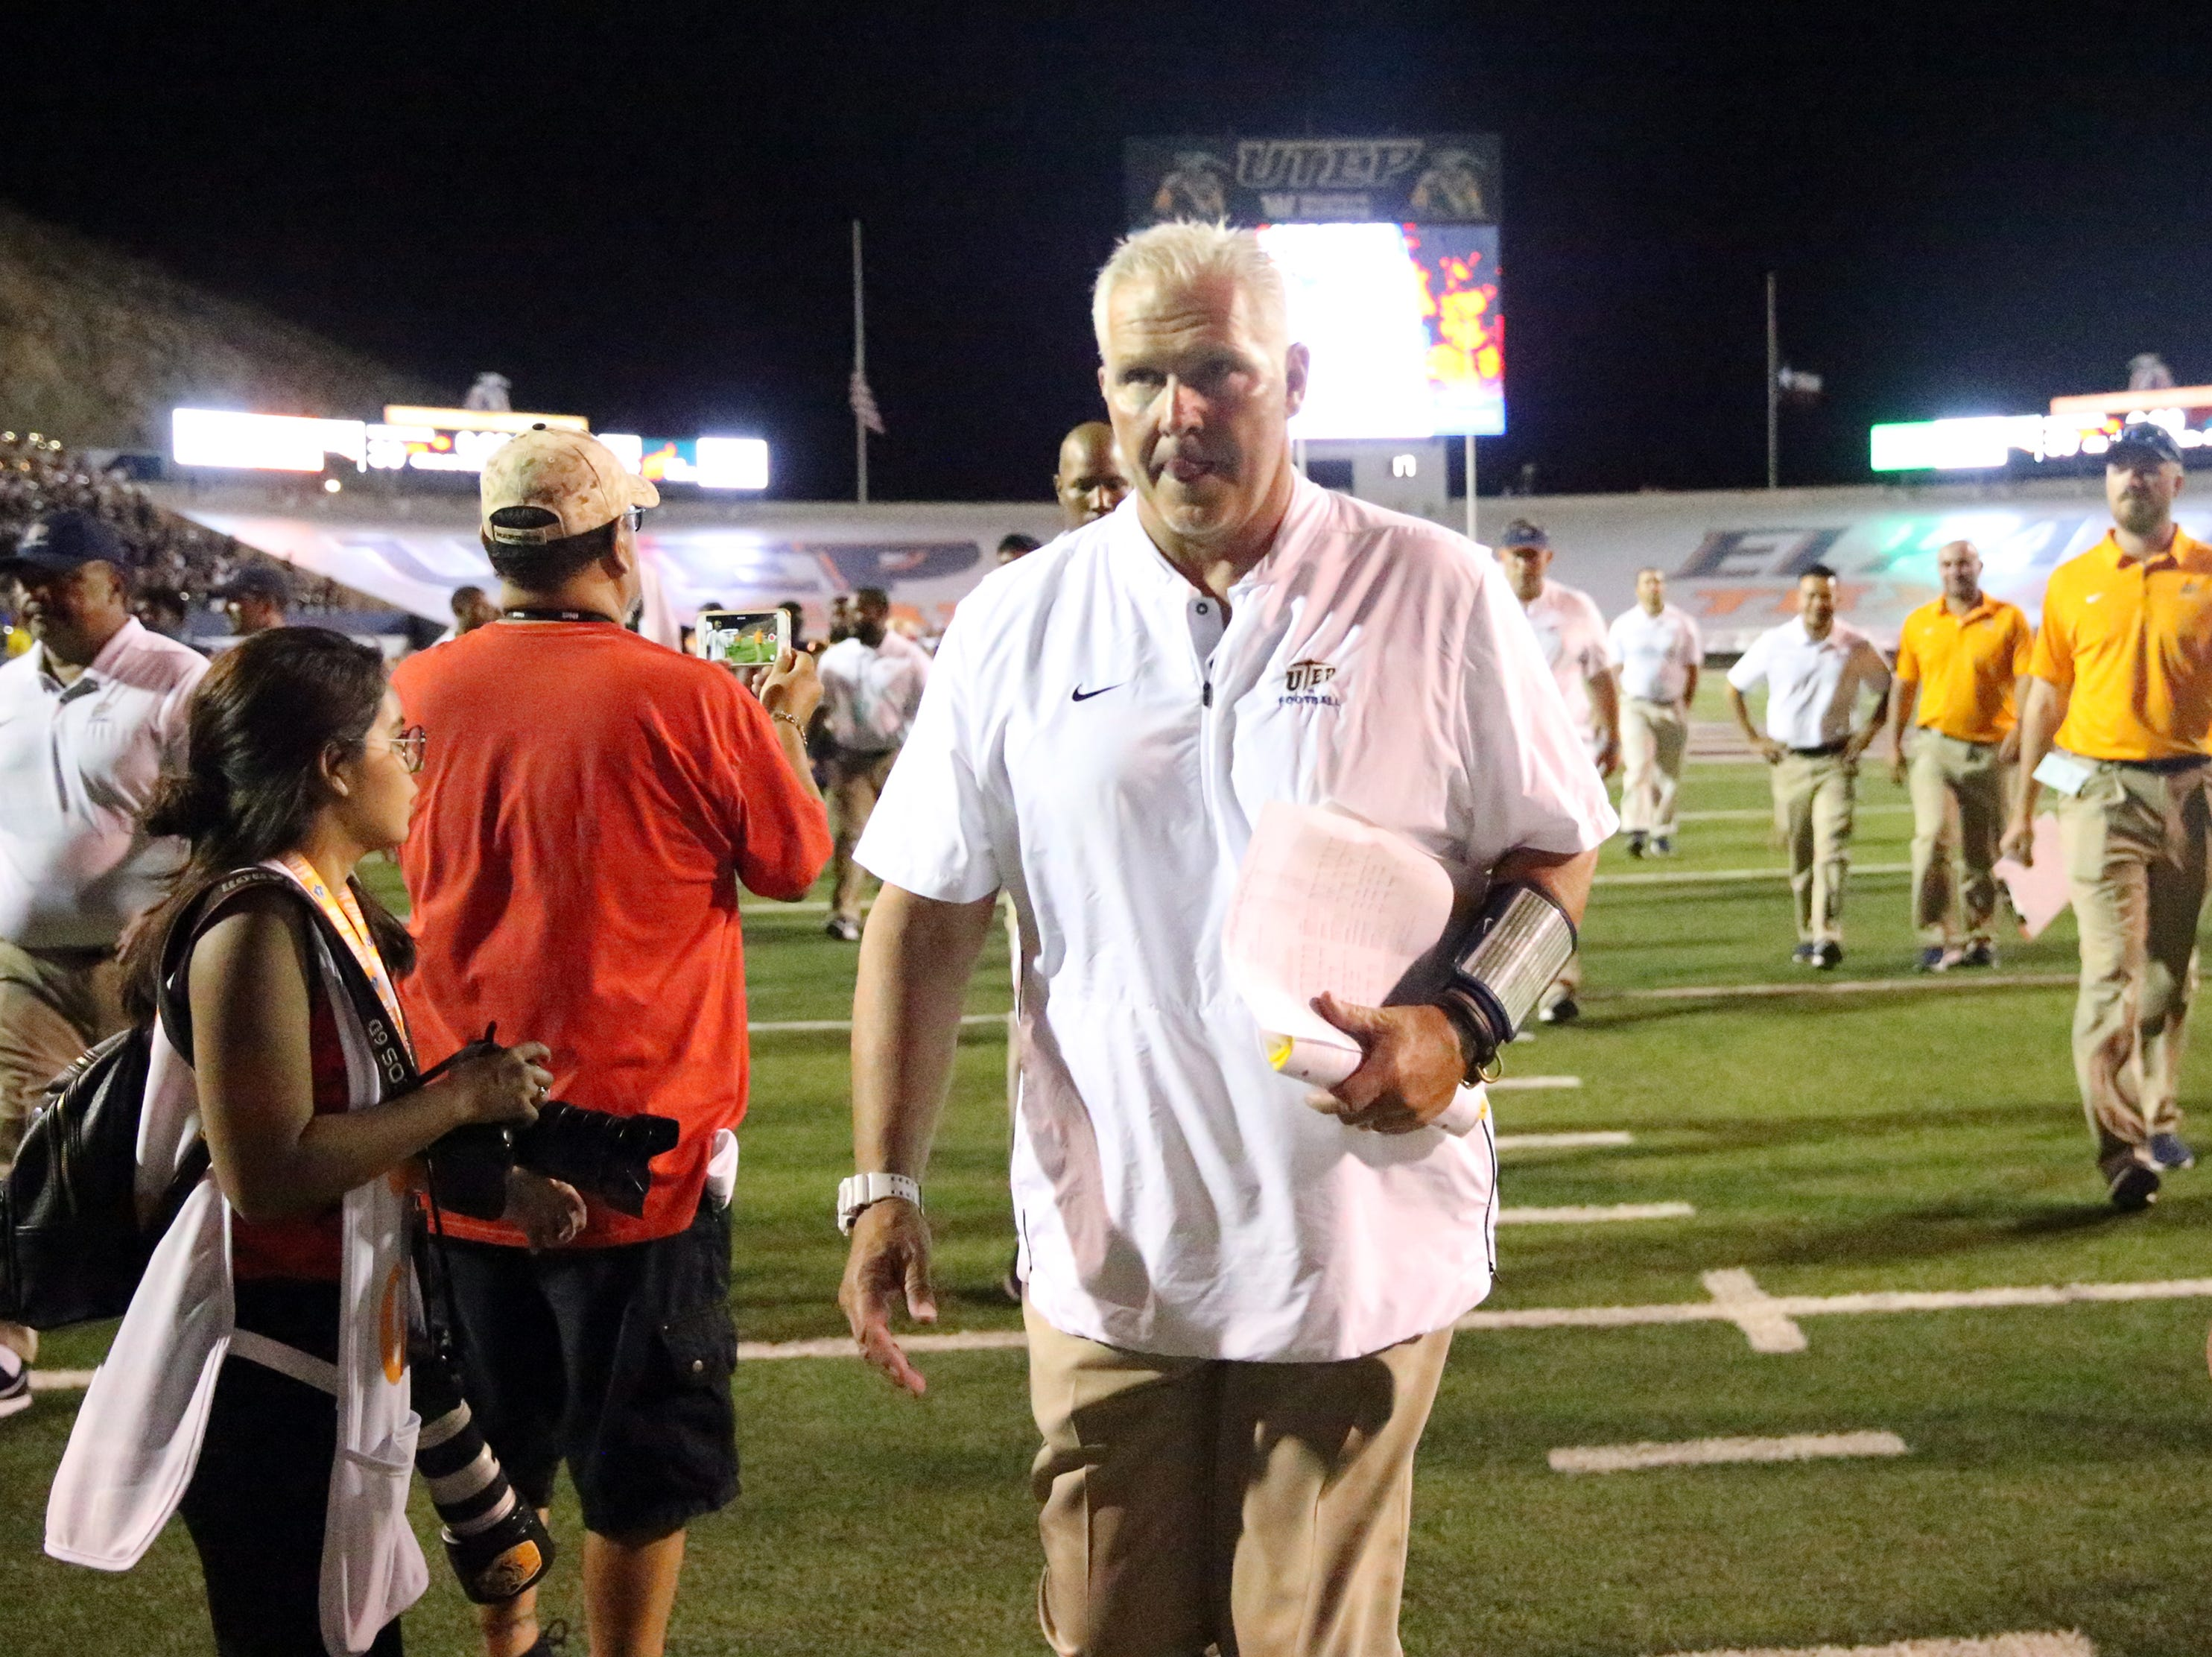 UTEP head football coach Dana Dimel leaves the Sun Bowl playing field following the Miner's season opening loss to Northern Arizona 30-10 Saturday.